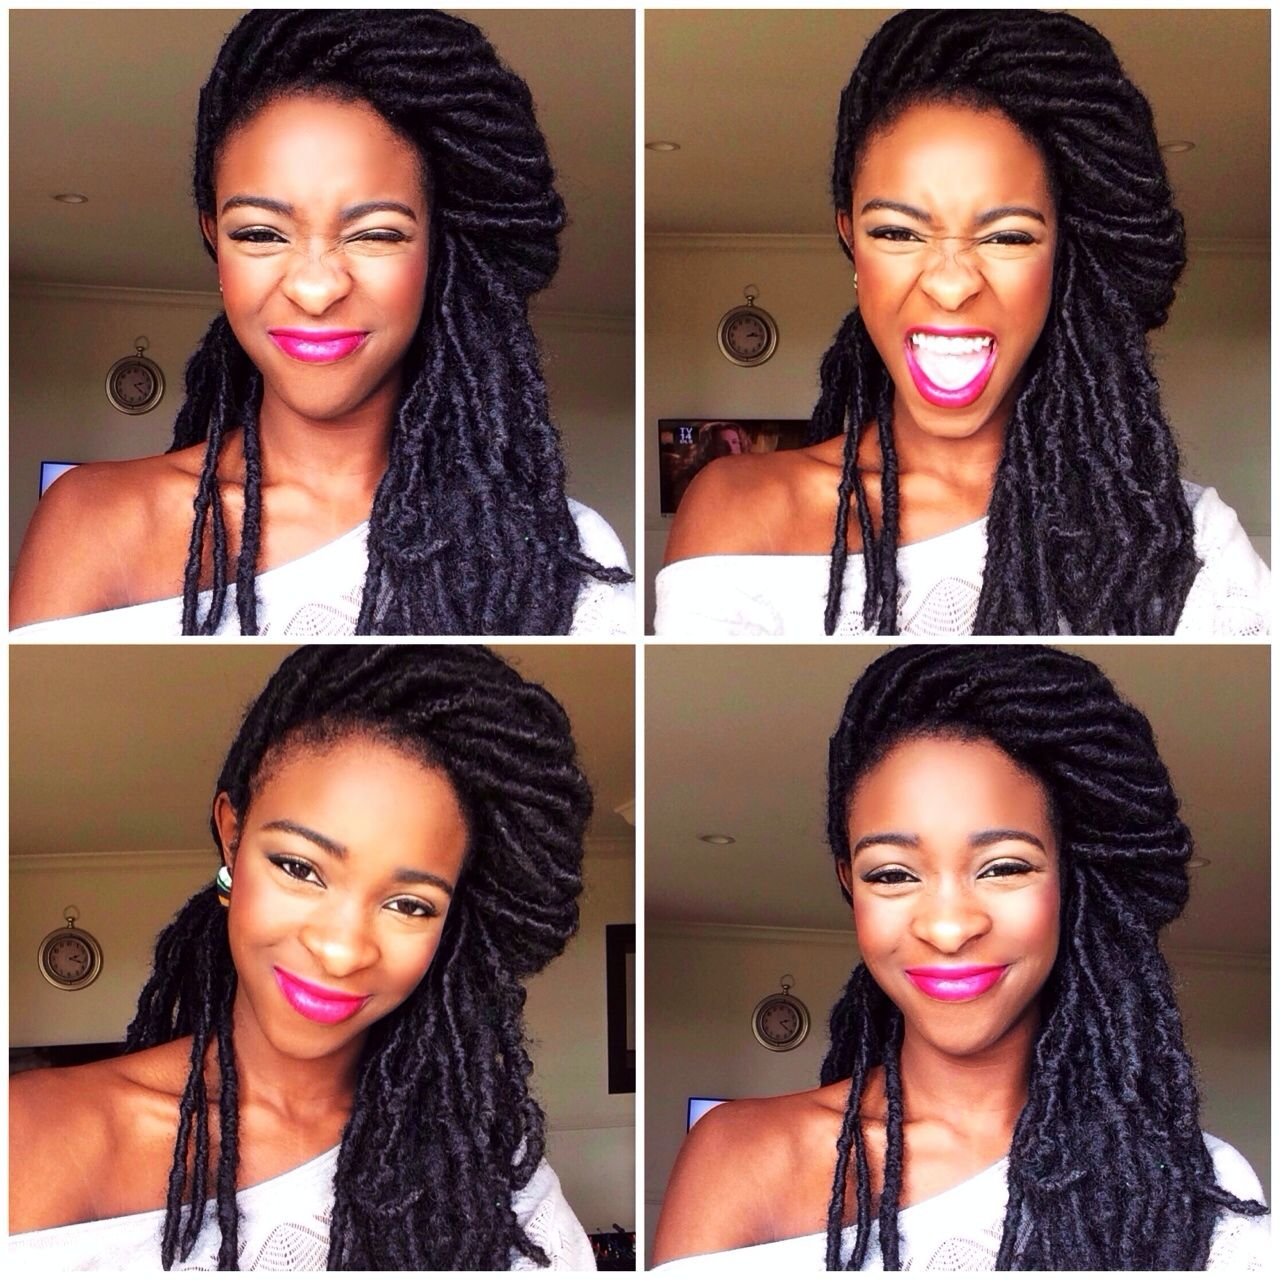 marley twists hairstyles pinterest - google search | hairdo styles